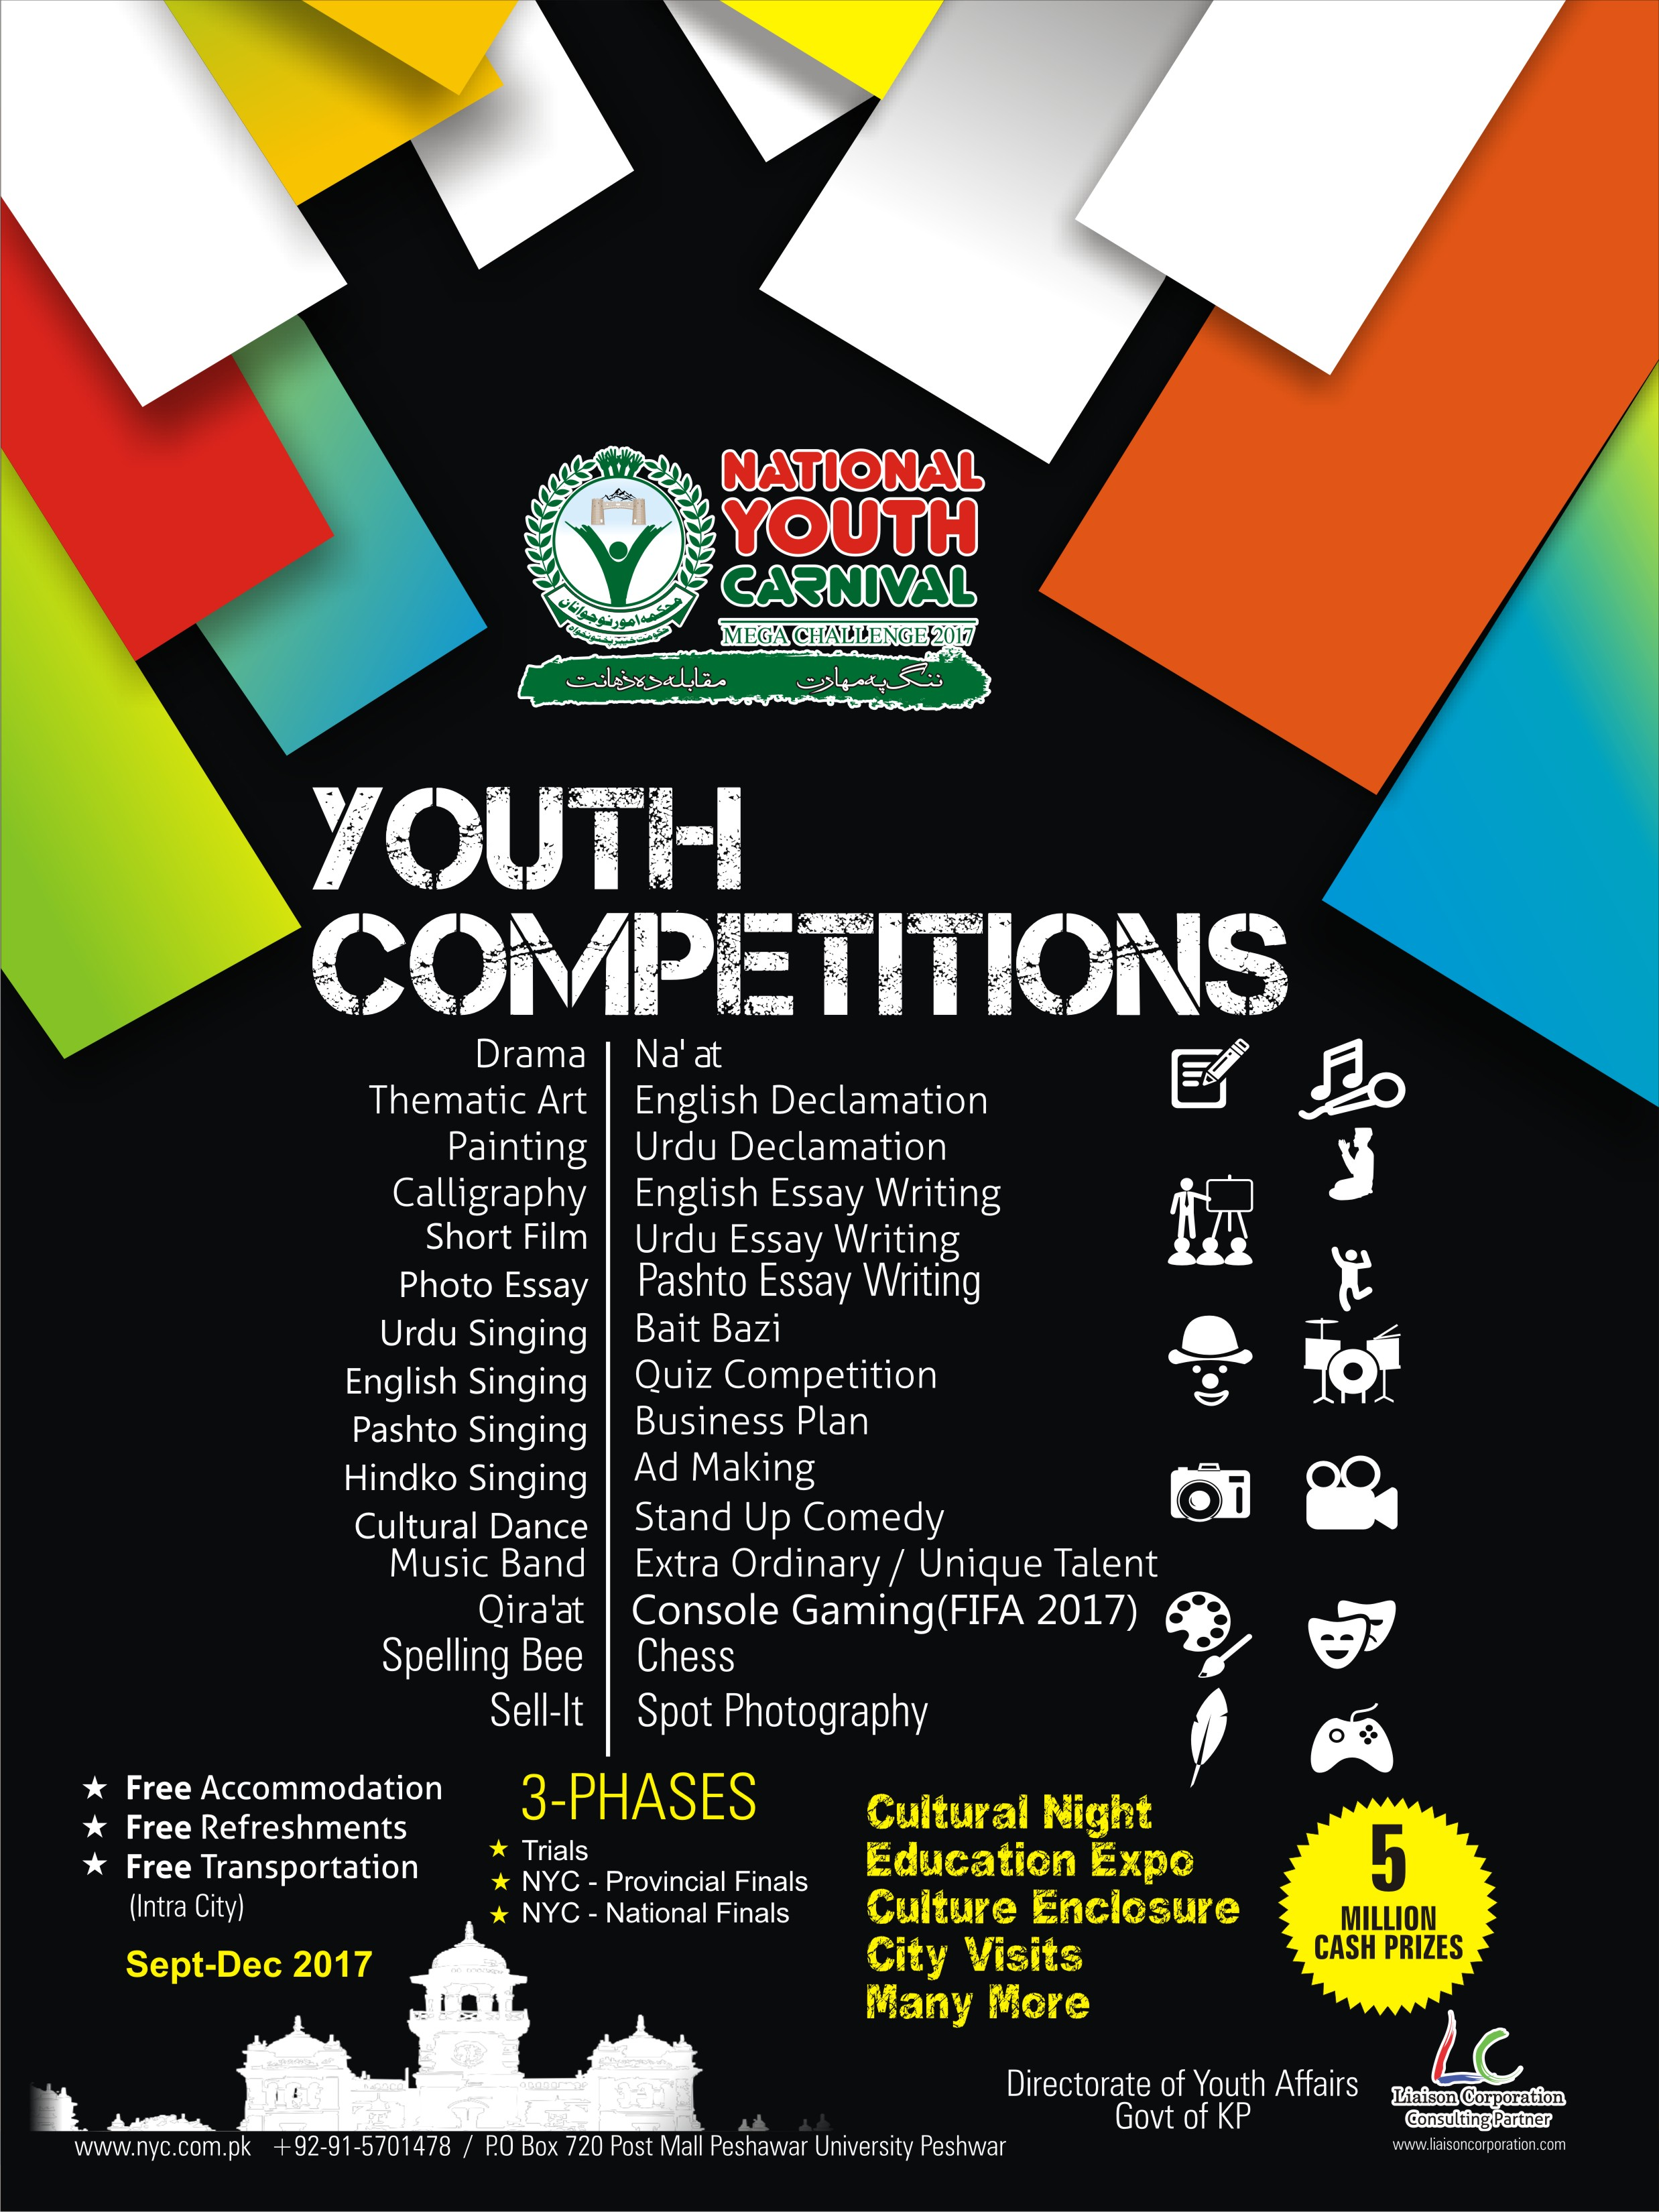 National Youth Carnival 2017: THE MEGA CHALLENGE